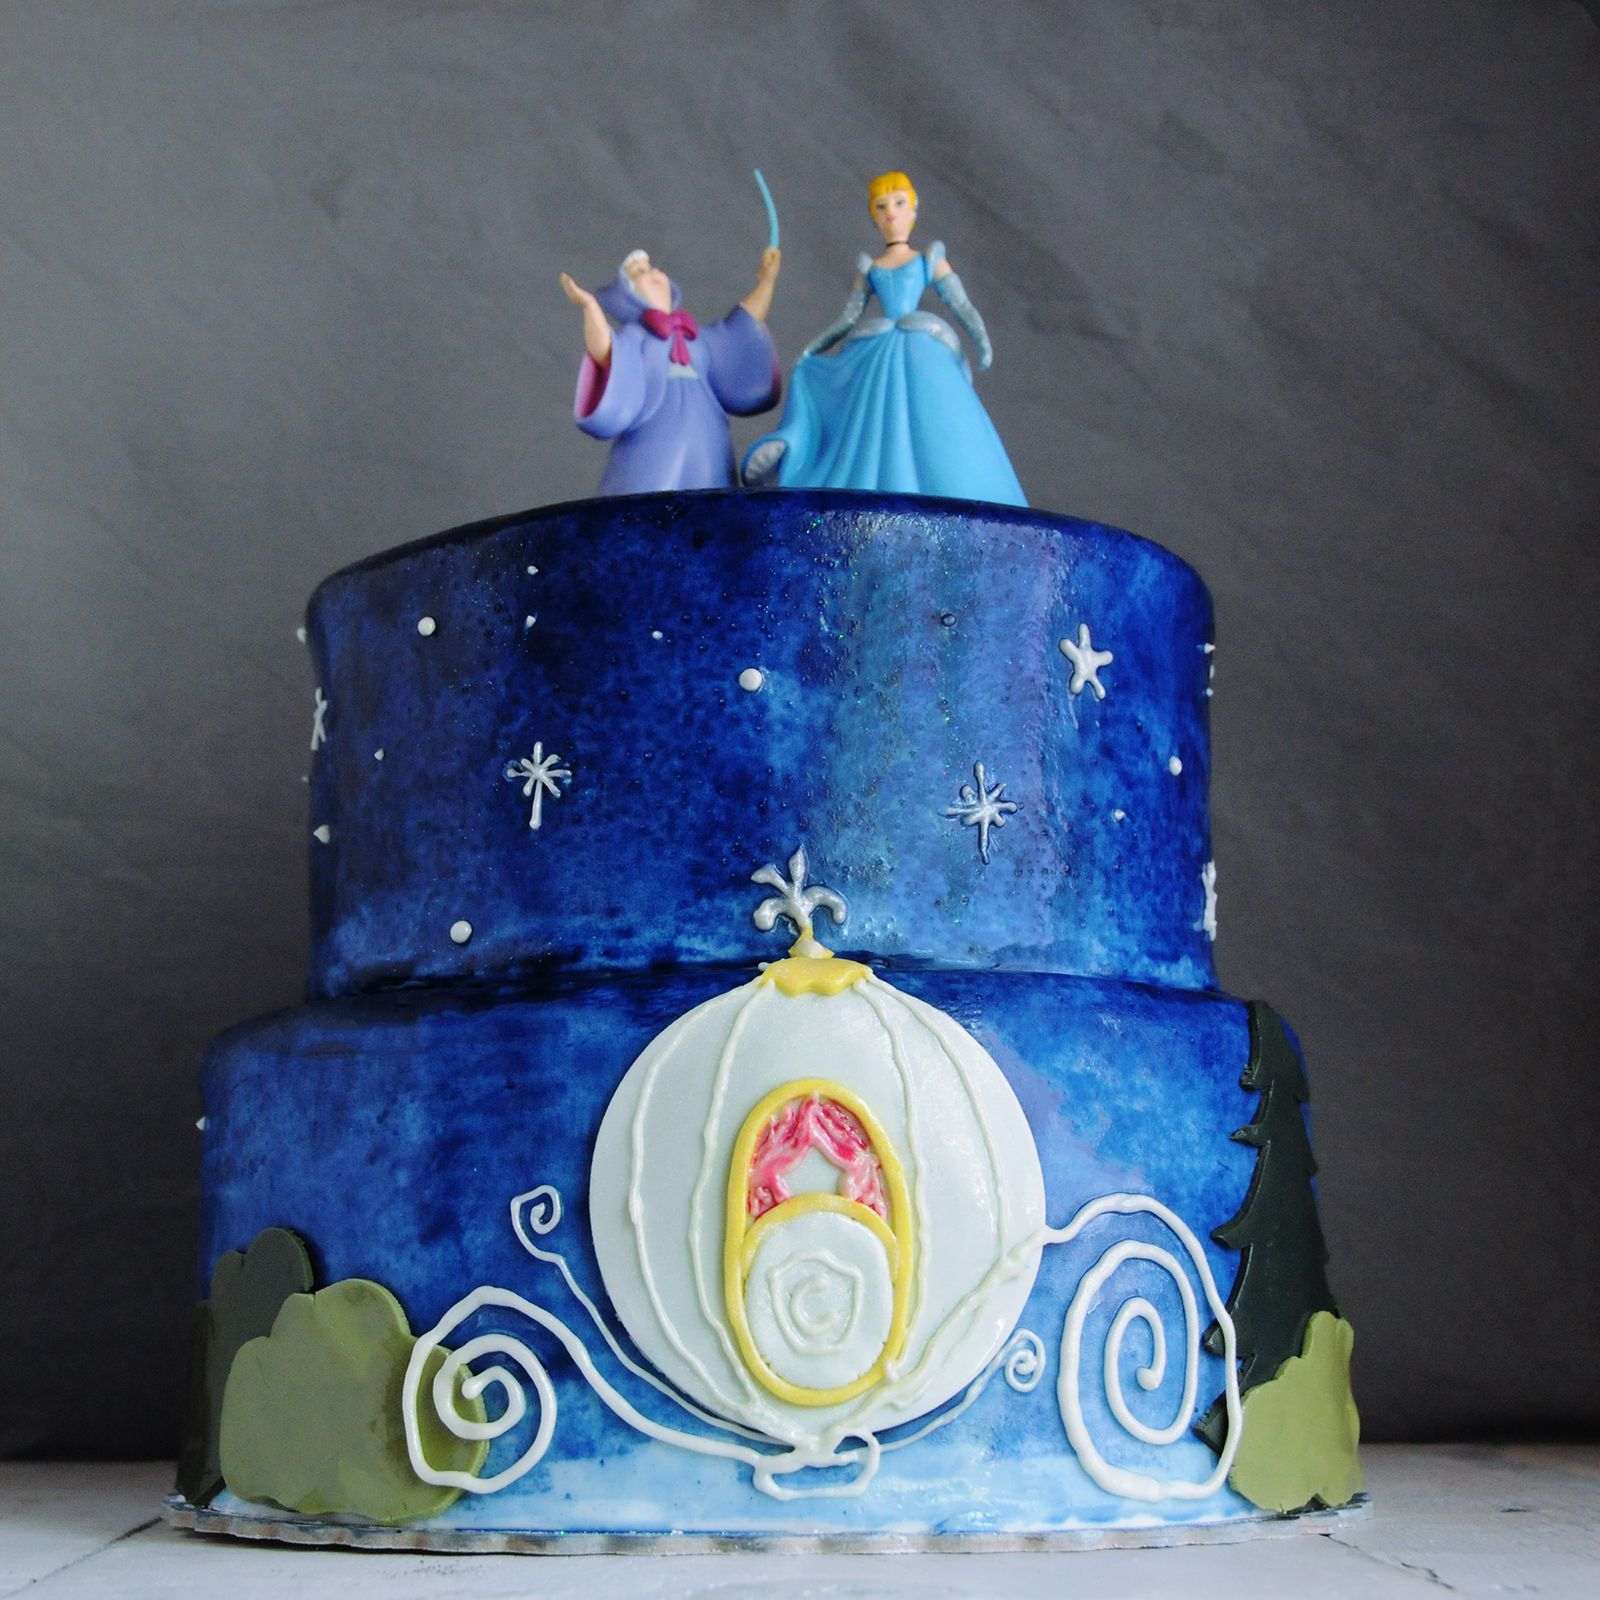 Cinderella At Midnight A Designed Cake For The